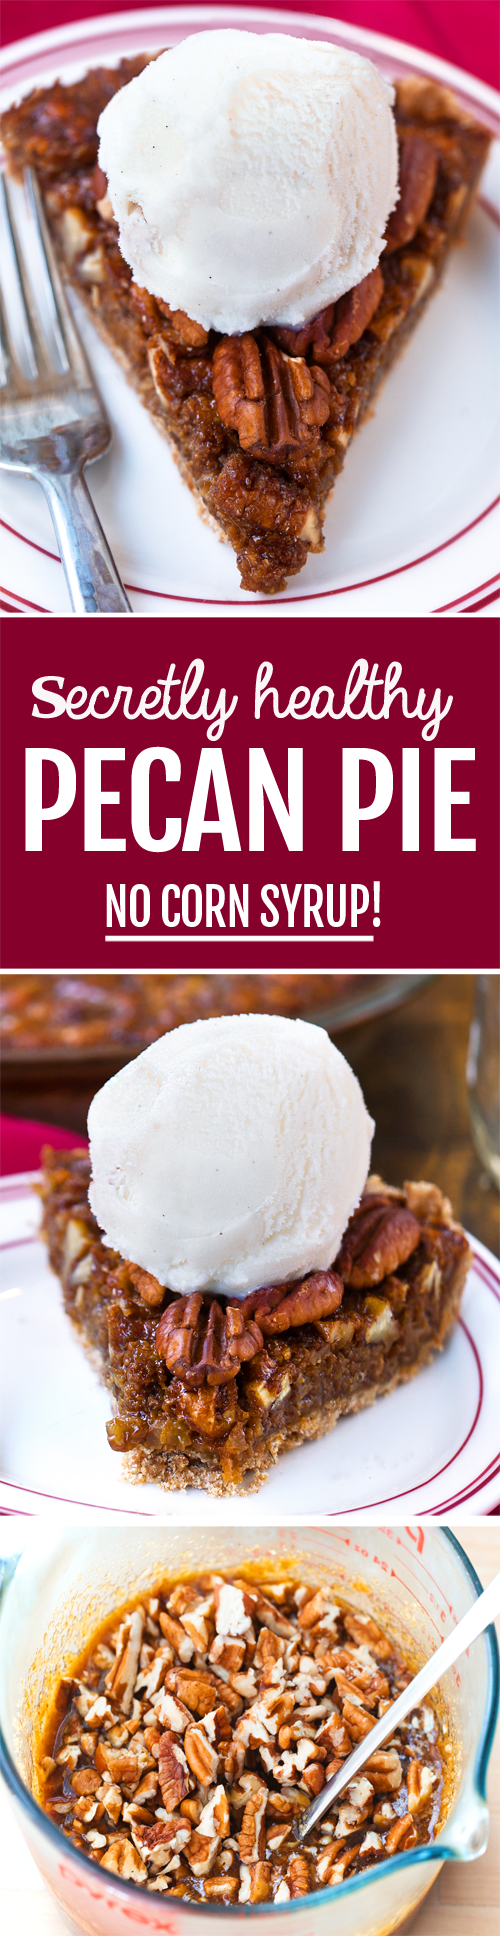 How does this magic pecan pie have just HALF the calories and sugar of traditional? It's a healthy pecan pie recipe of dreams!